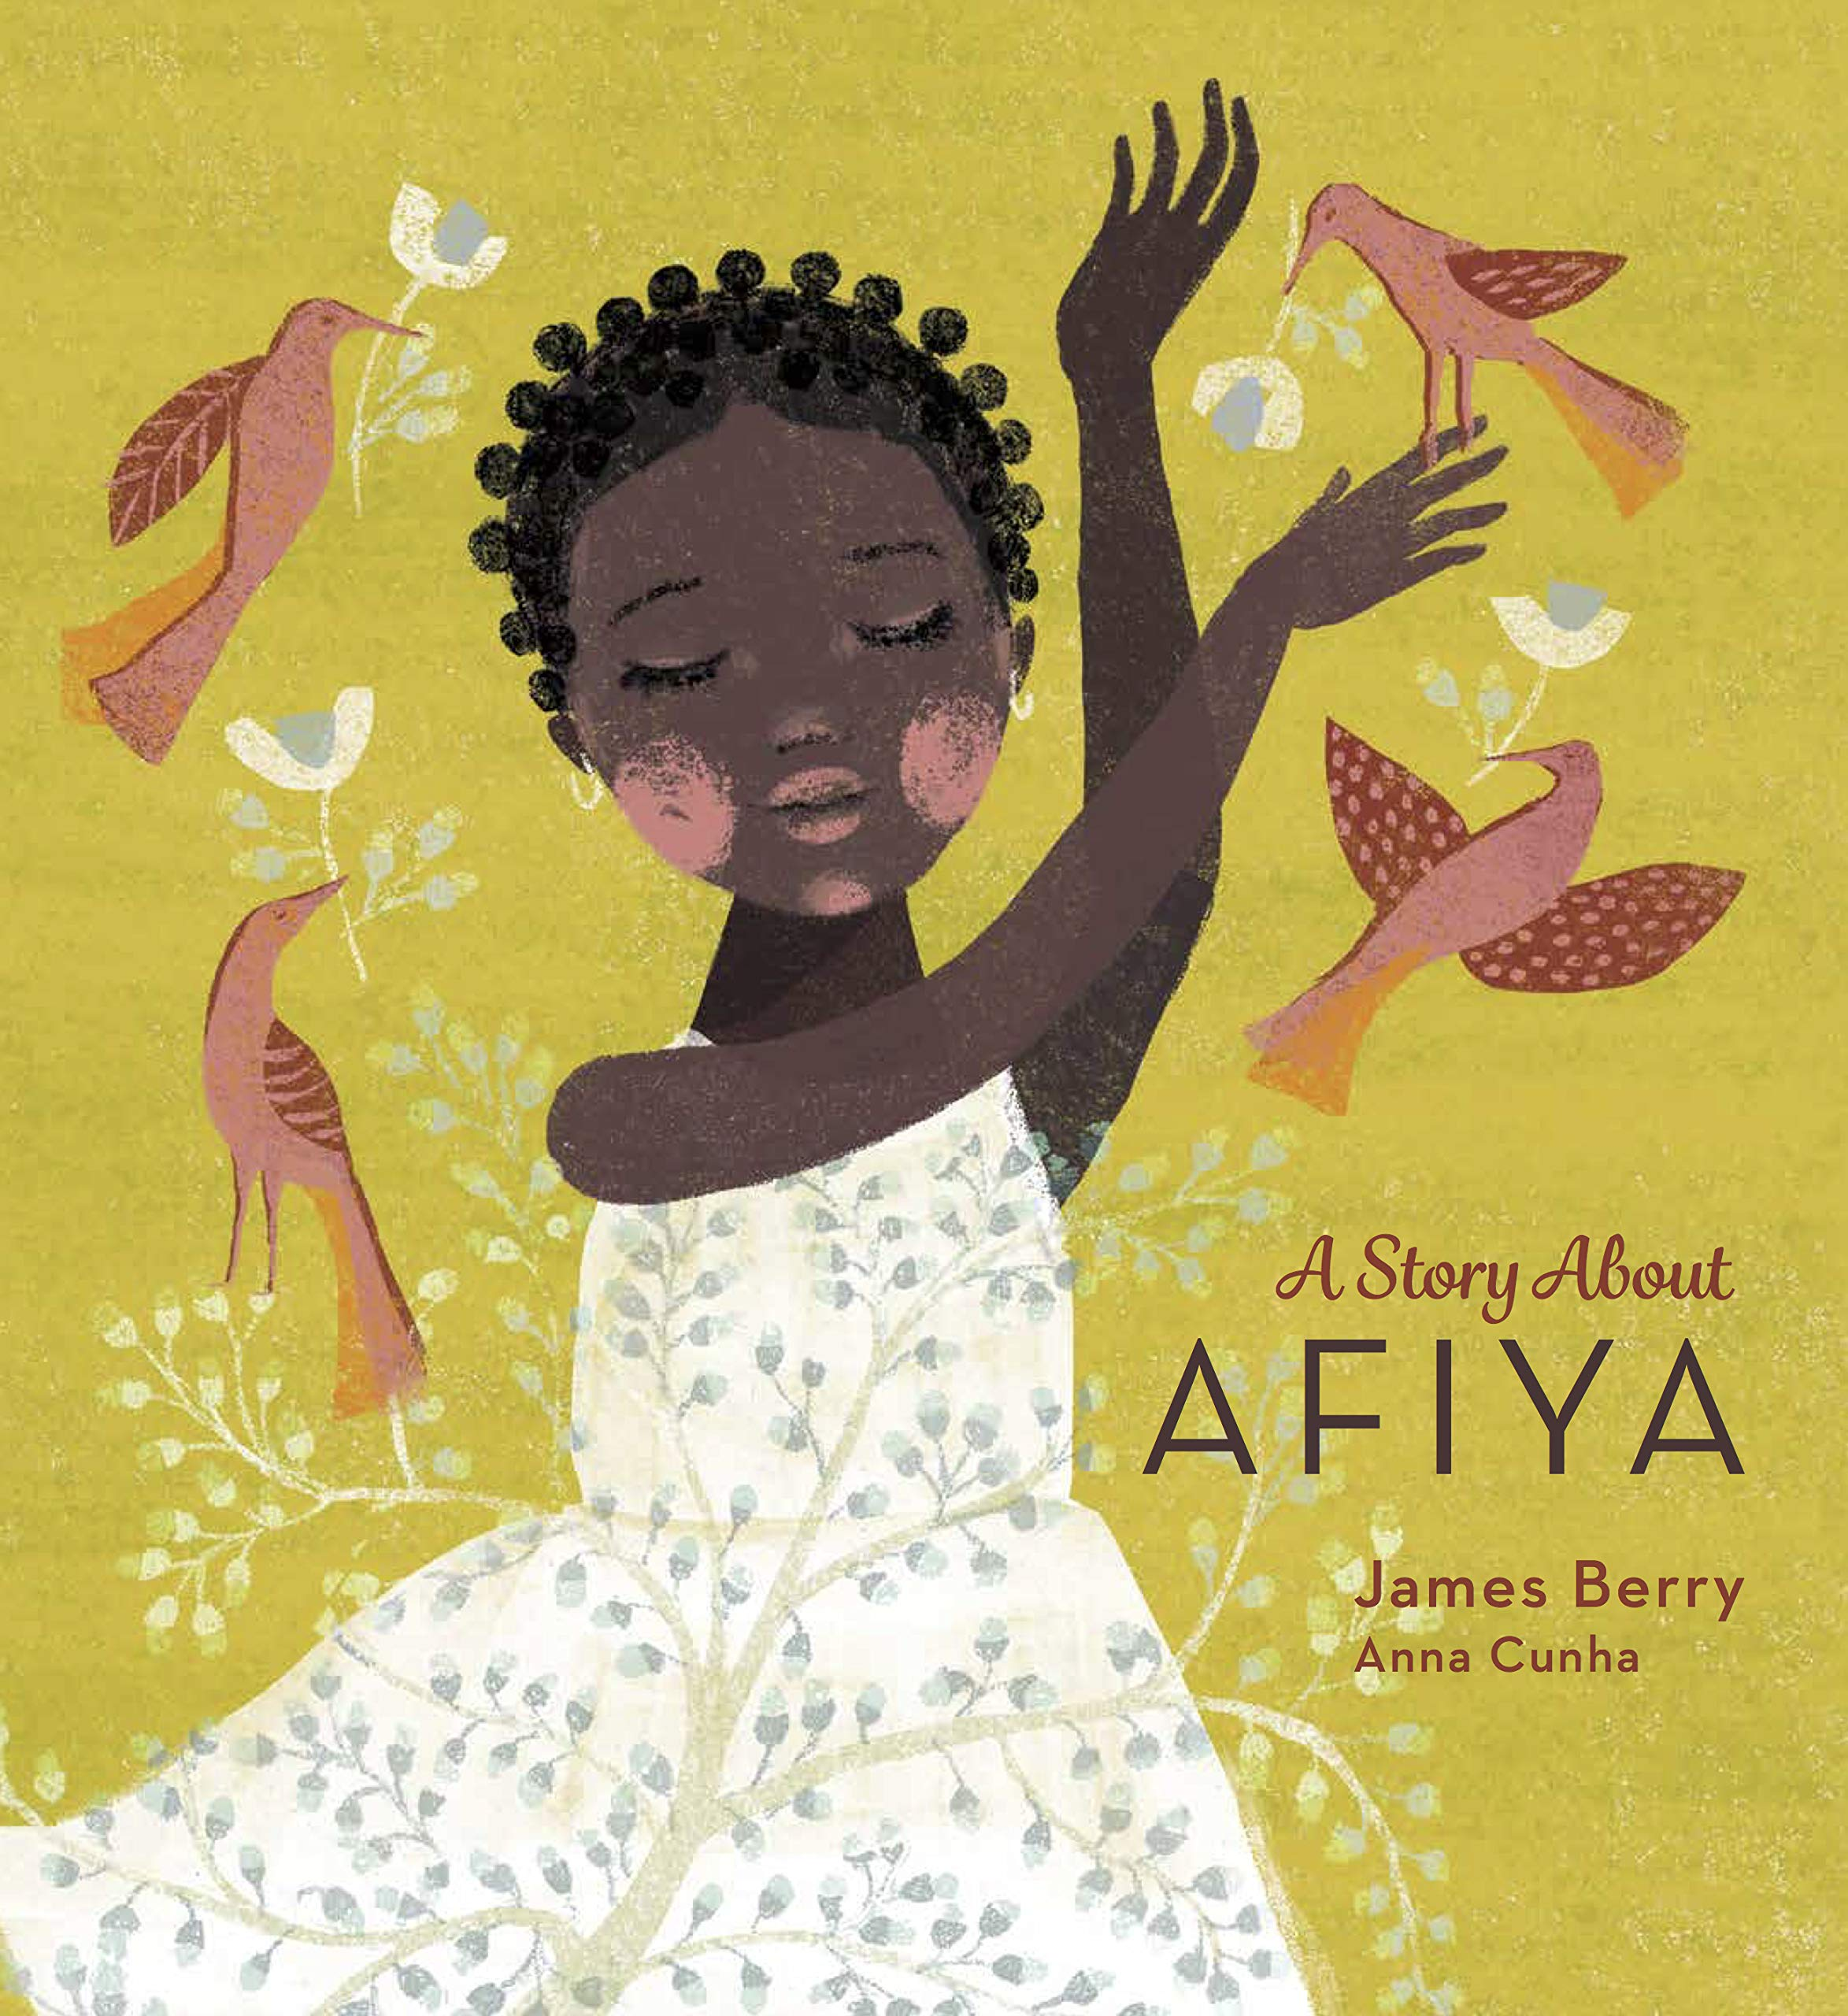 A story about Afiya (cover)